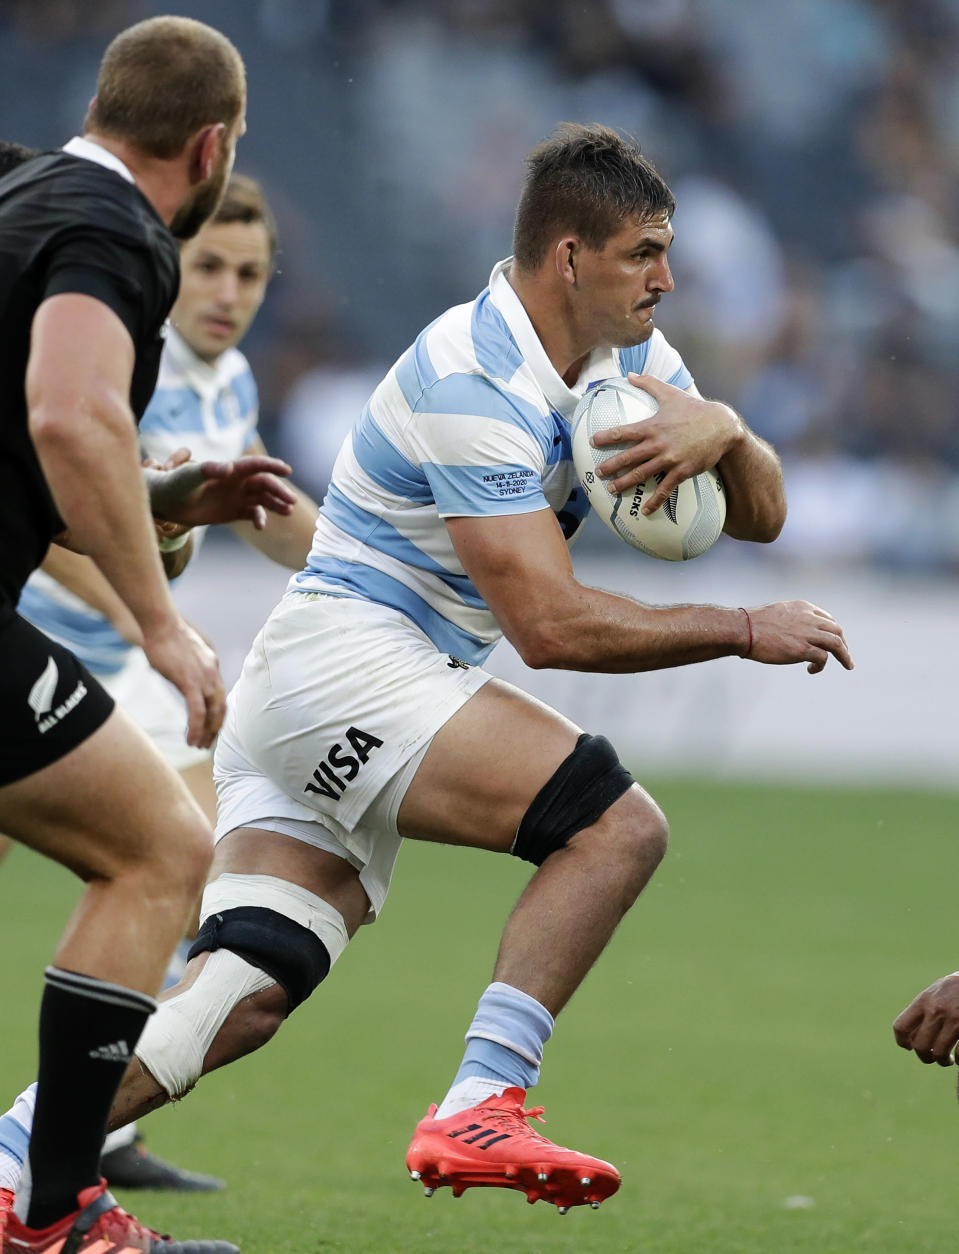 """FILE - In this Saturday, Nov. 14, 2020, file photo Argentina's Pablo Matera makes a run during the Tri-Nations rugby test between Argentina and New Zealand at Bankwest Stadium in Sydney, Australia. Matera has been stripped of the captaincy of the Argentina national rugby team and suspended along with two teammates over historic social media posts which have been deemed """"discriminatory and xenophobic."""" (AP Photo/Rick Rycroft, File)"""